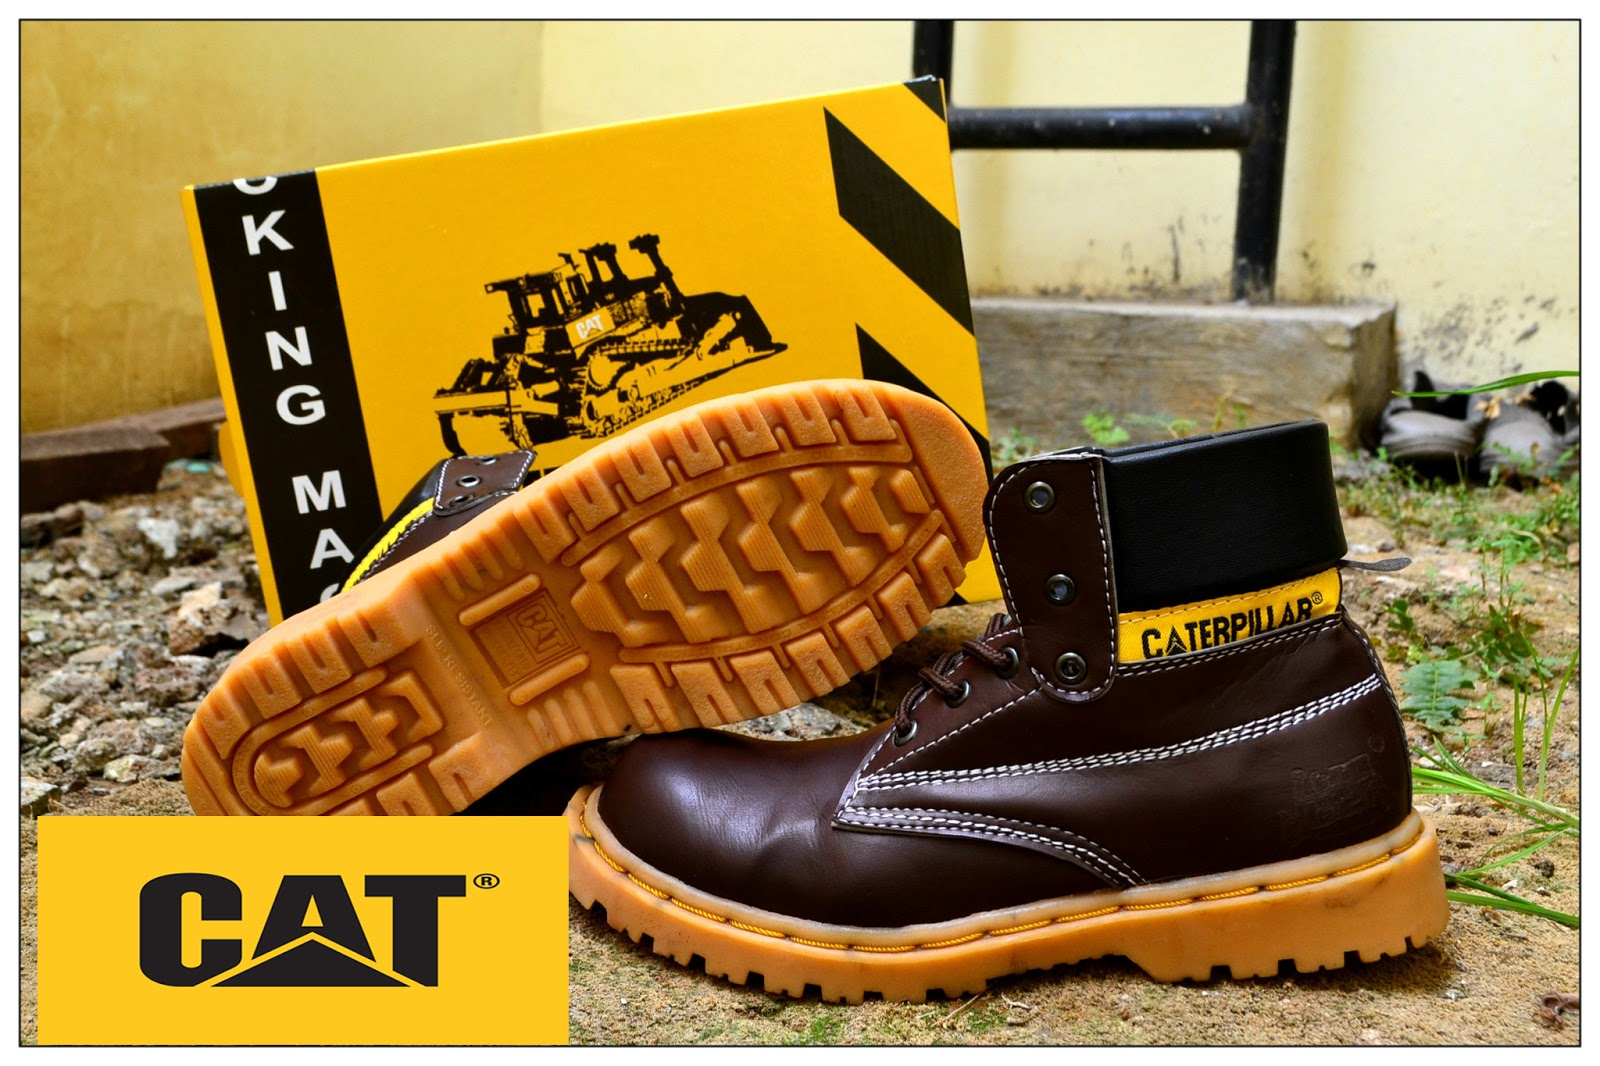 Sepatu Caterpillar Kw Super Boots Safety